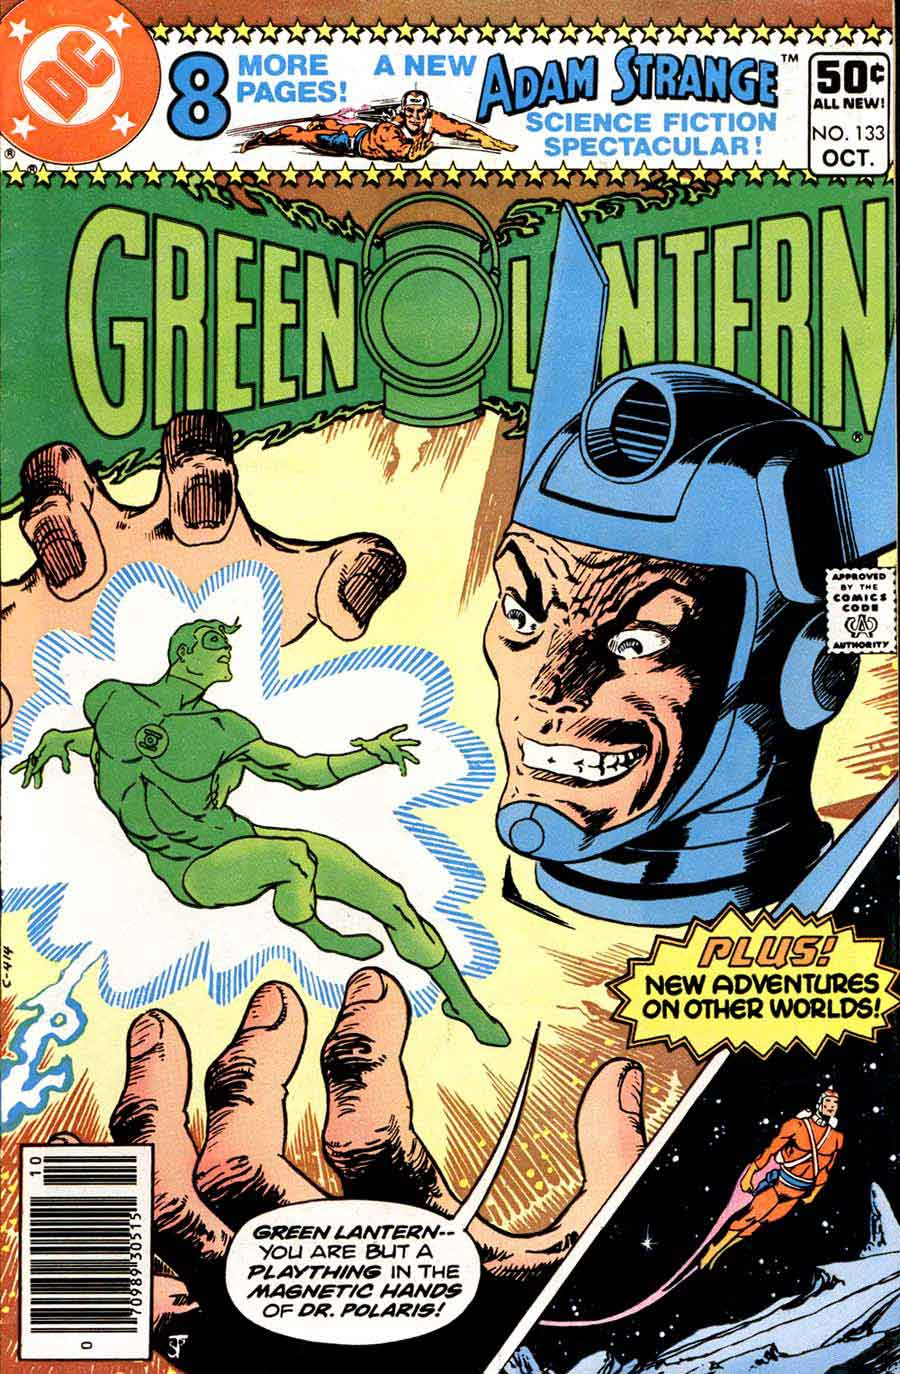 Green Lantern v2 #133 dc comic book cover art by Jim Starlin